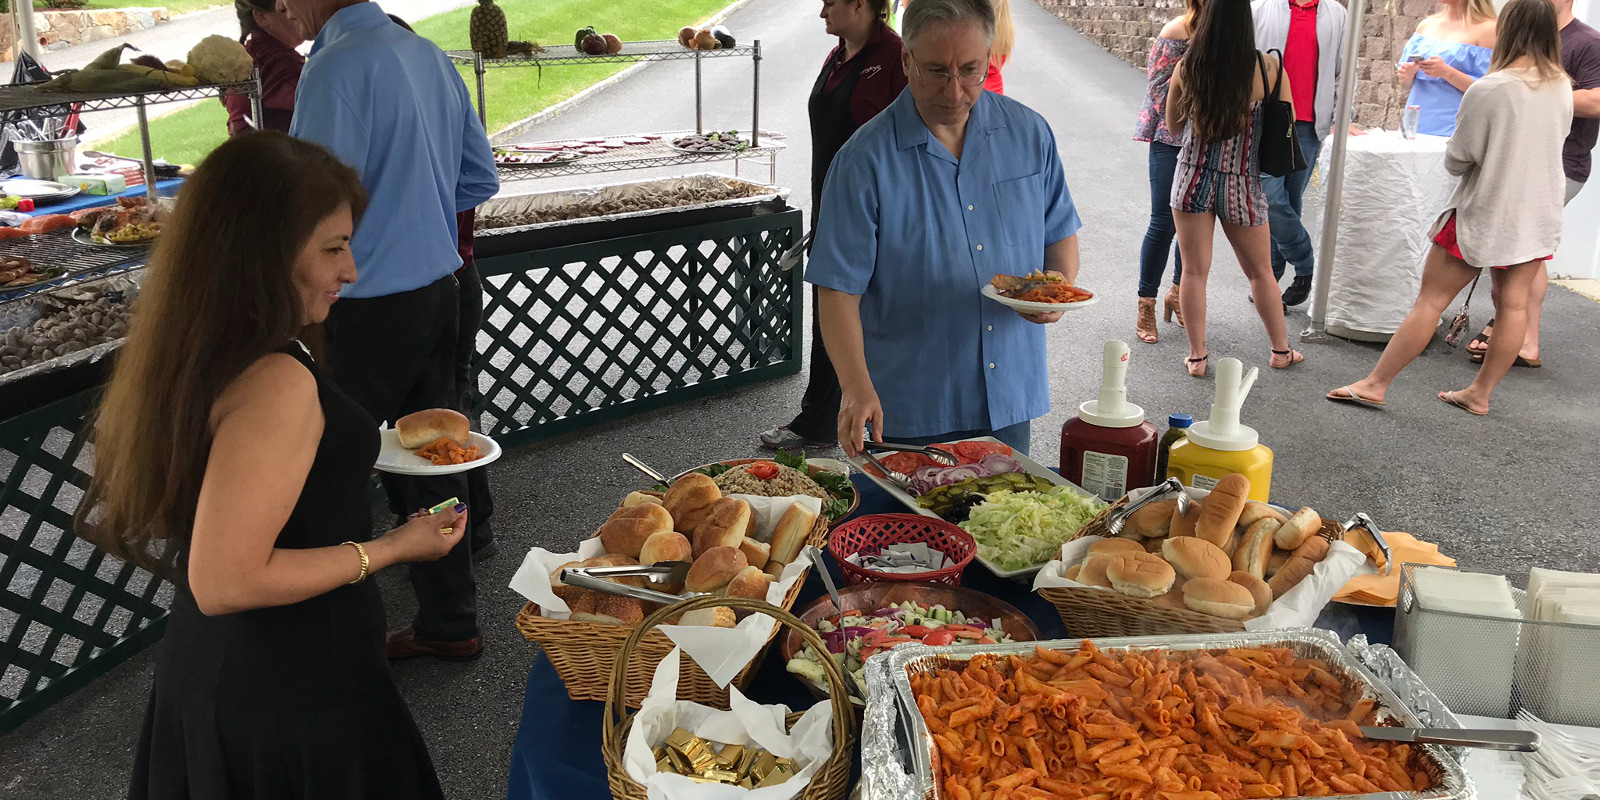 Gersky's Catering